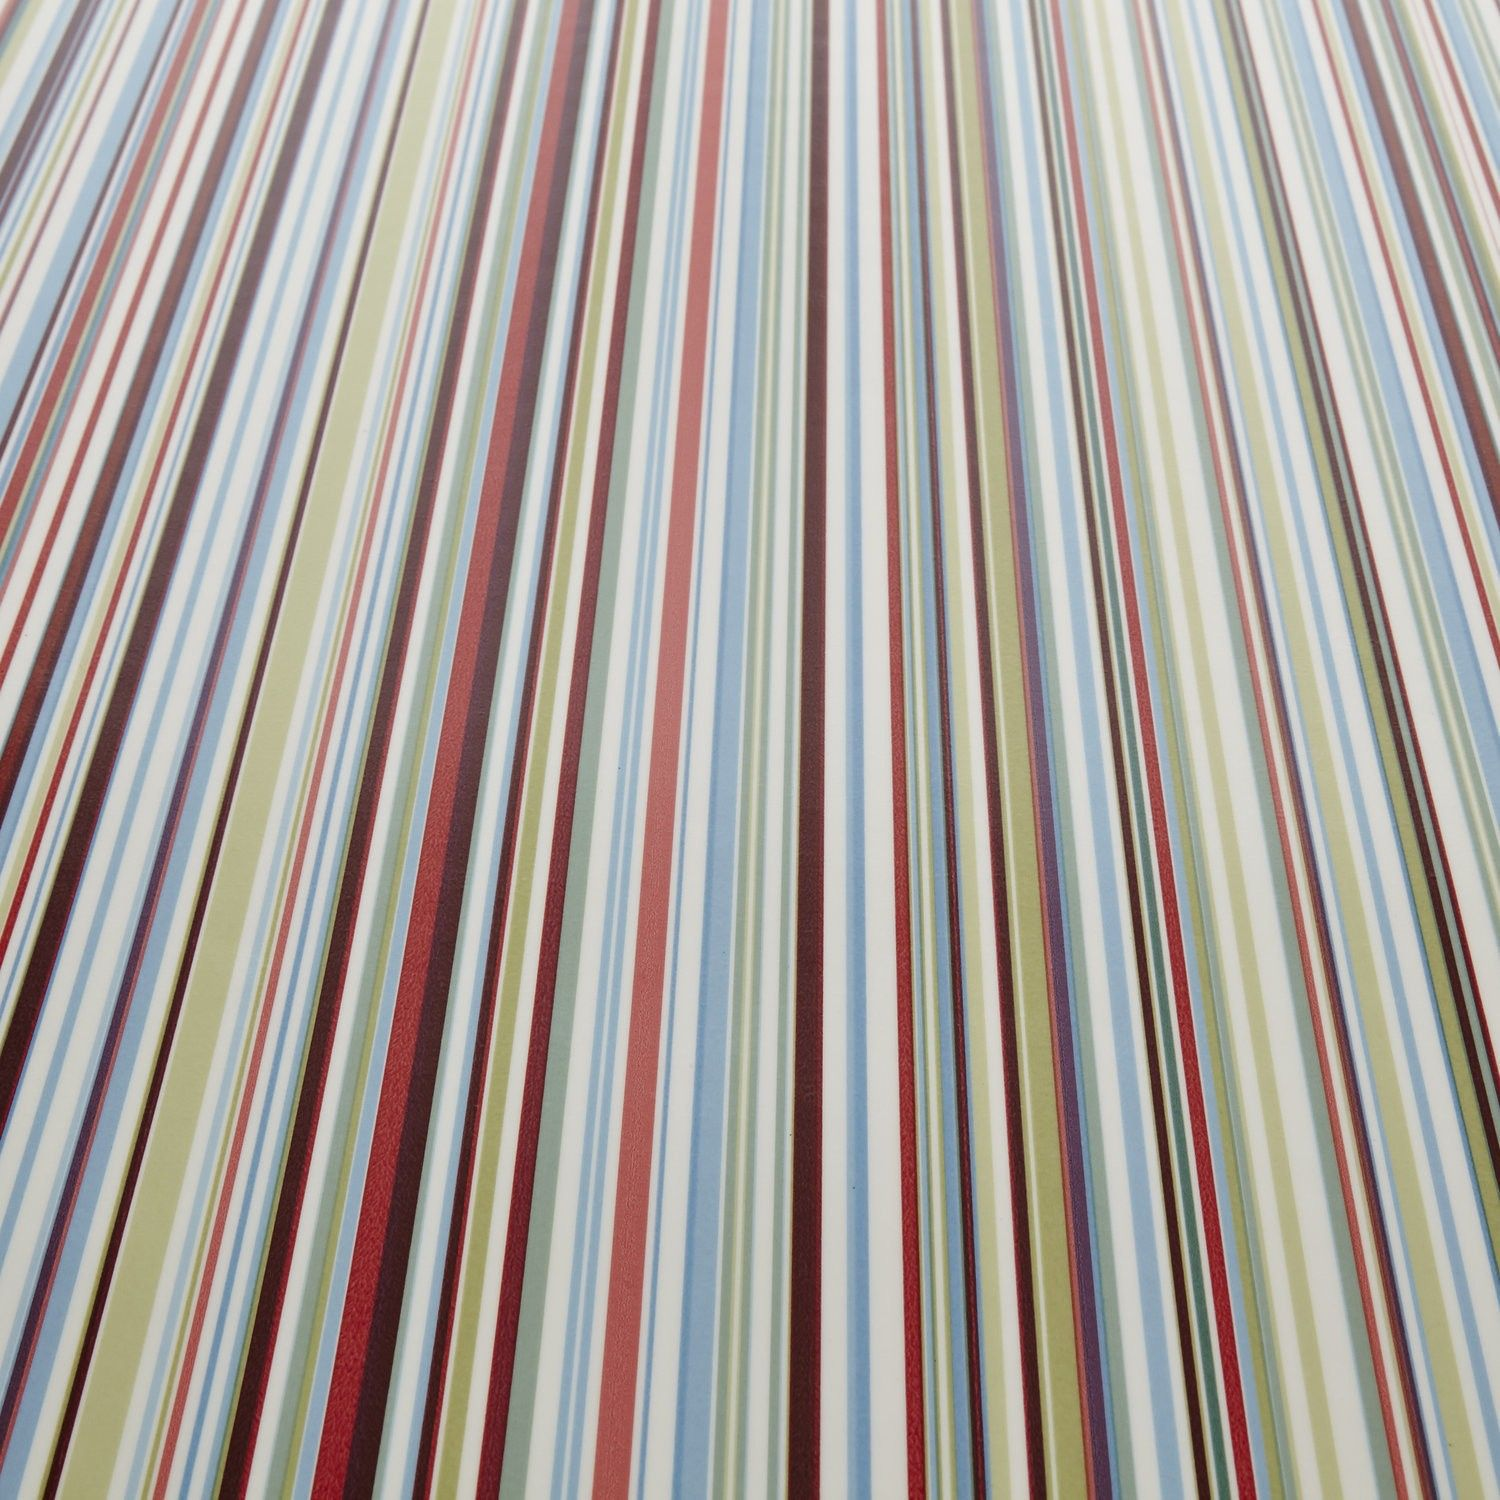 Safegrip 75 Striped Vinyl Flooring Carpetright my